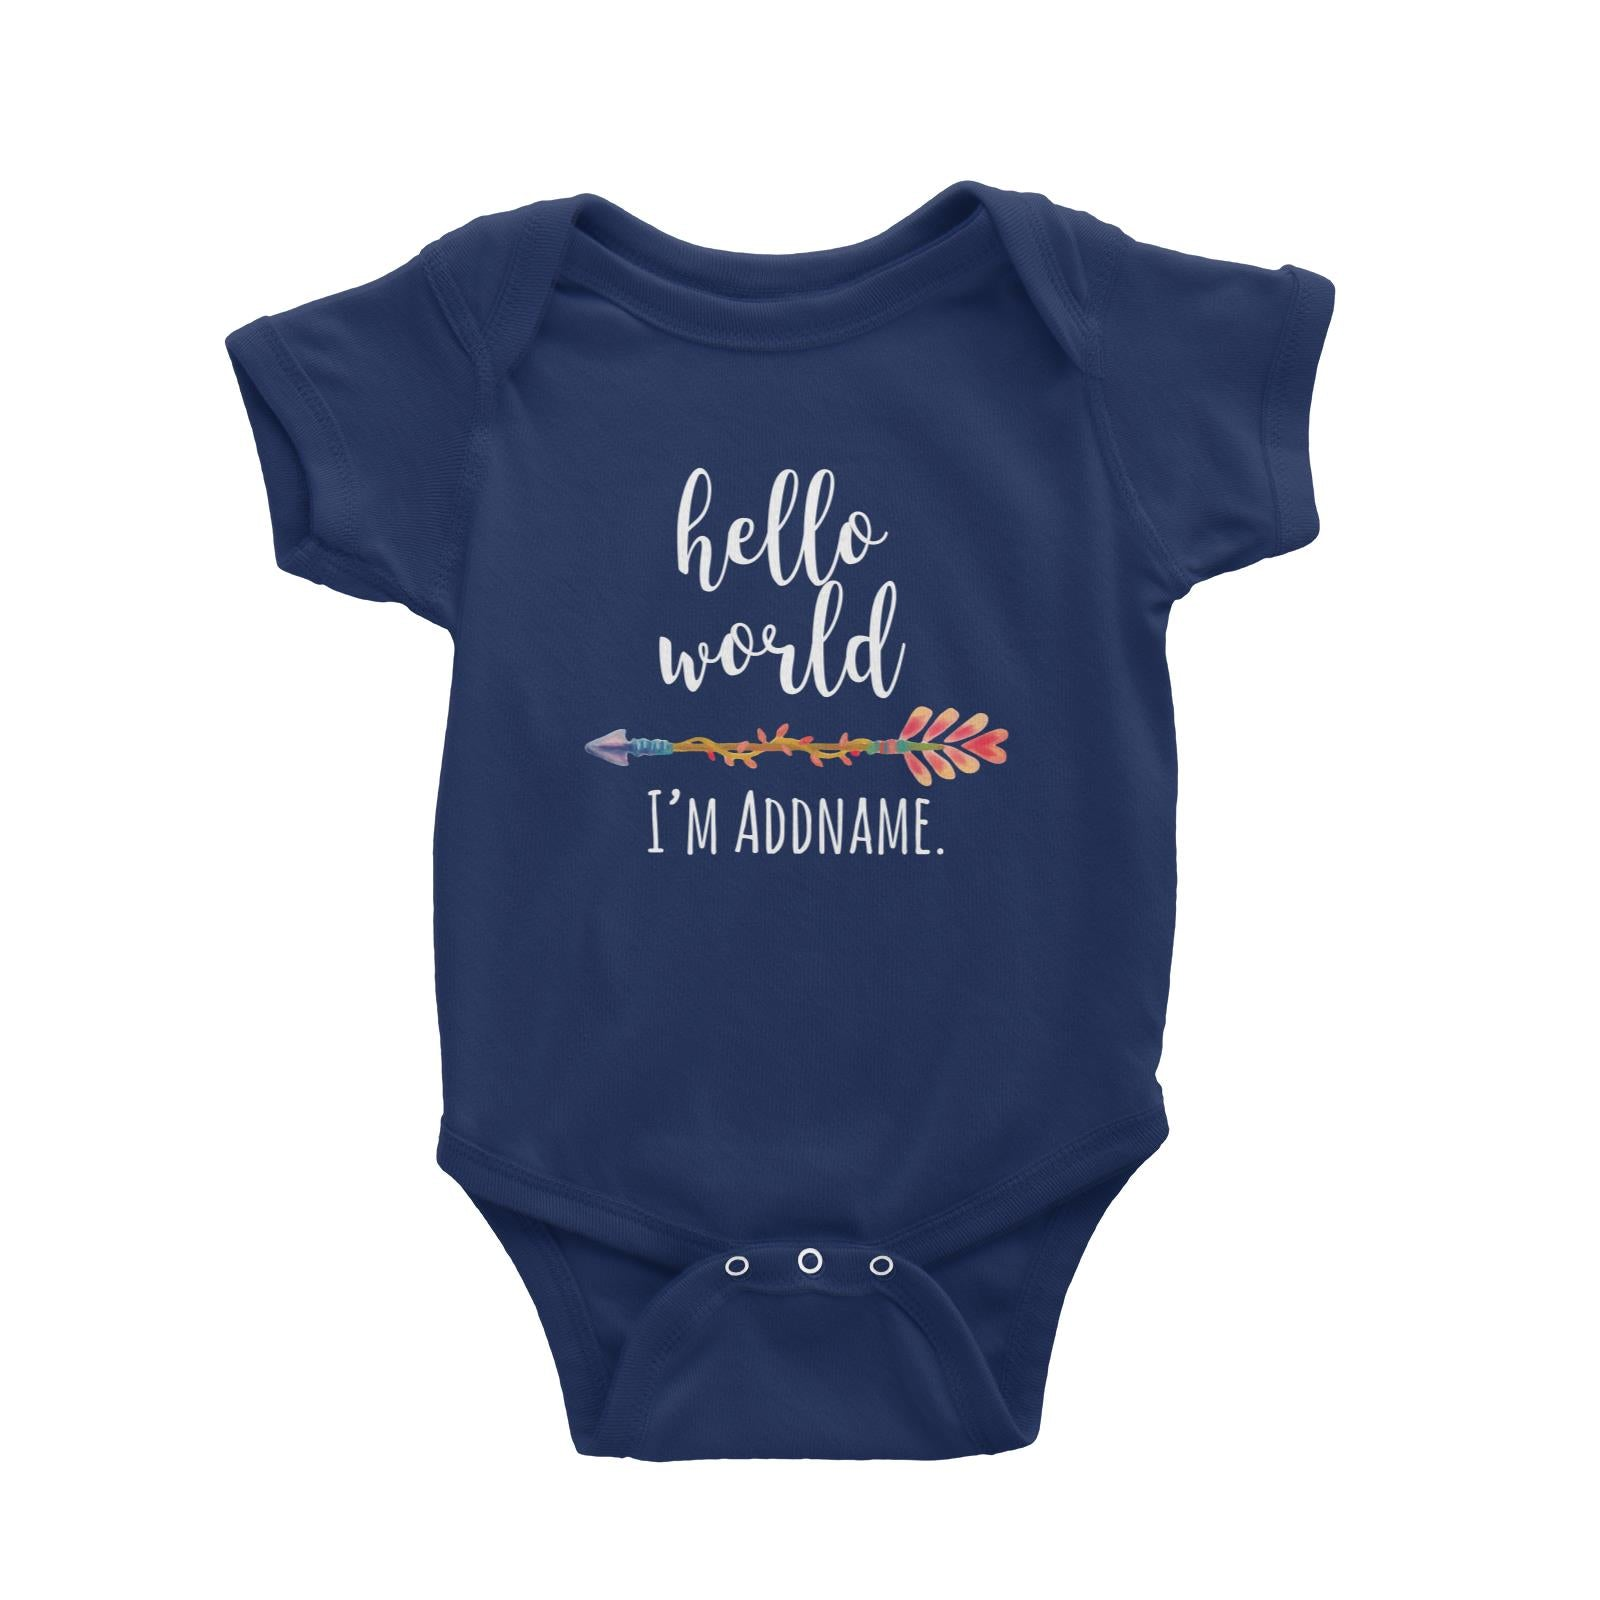 Hello World I'm Addname with Arrow Baby Romper Personalizable Designs Basic Newborn